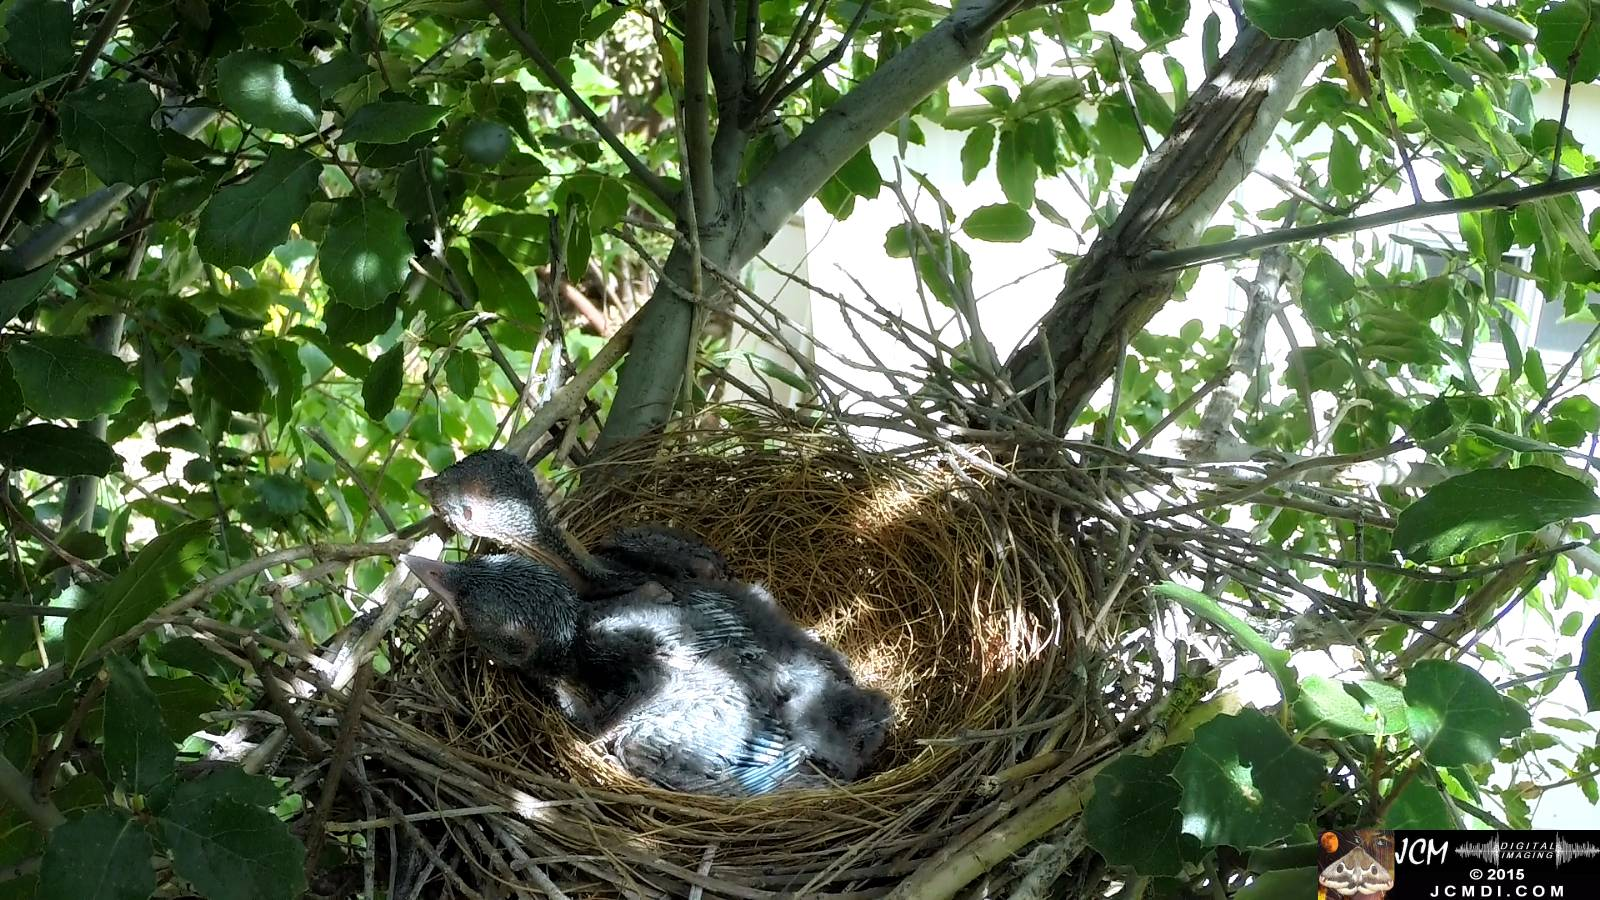 Scrub Jay nest documentary - chicks resting wake as parent arrives